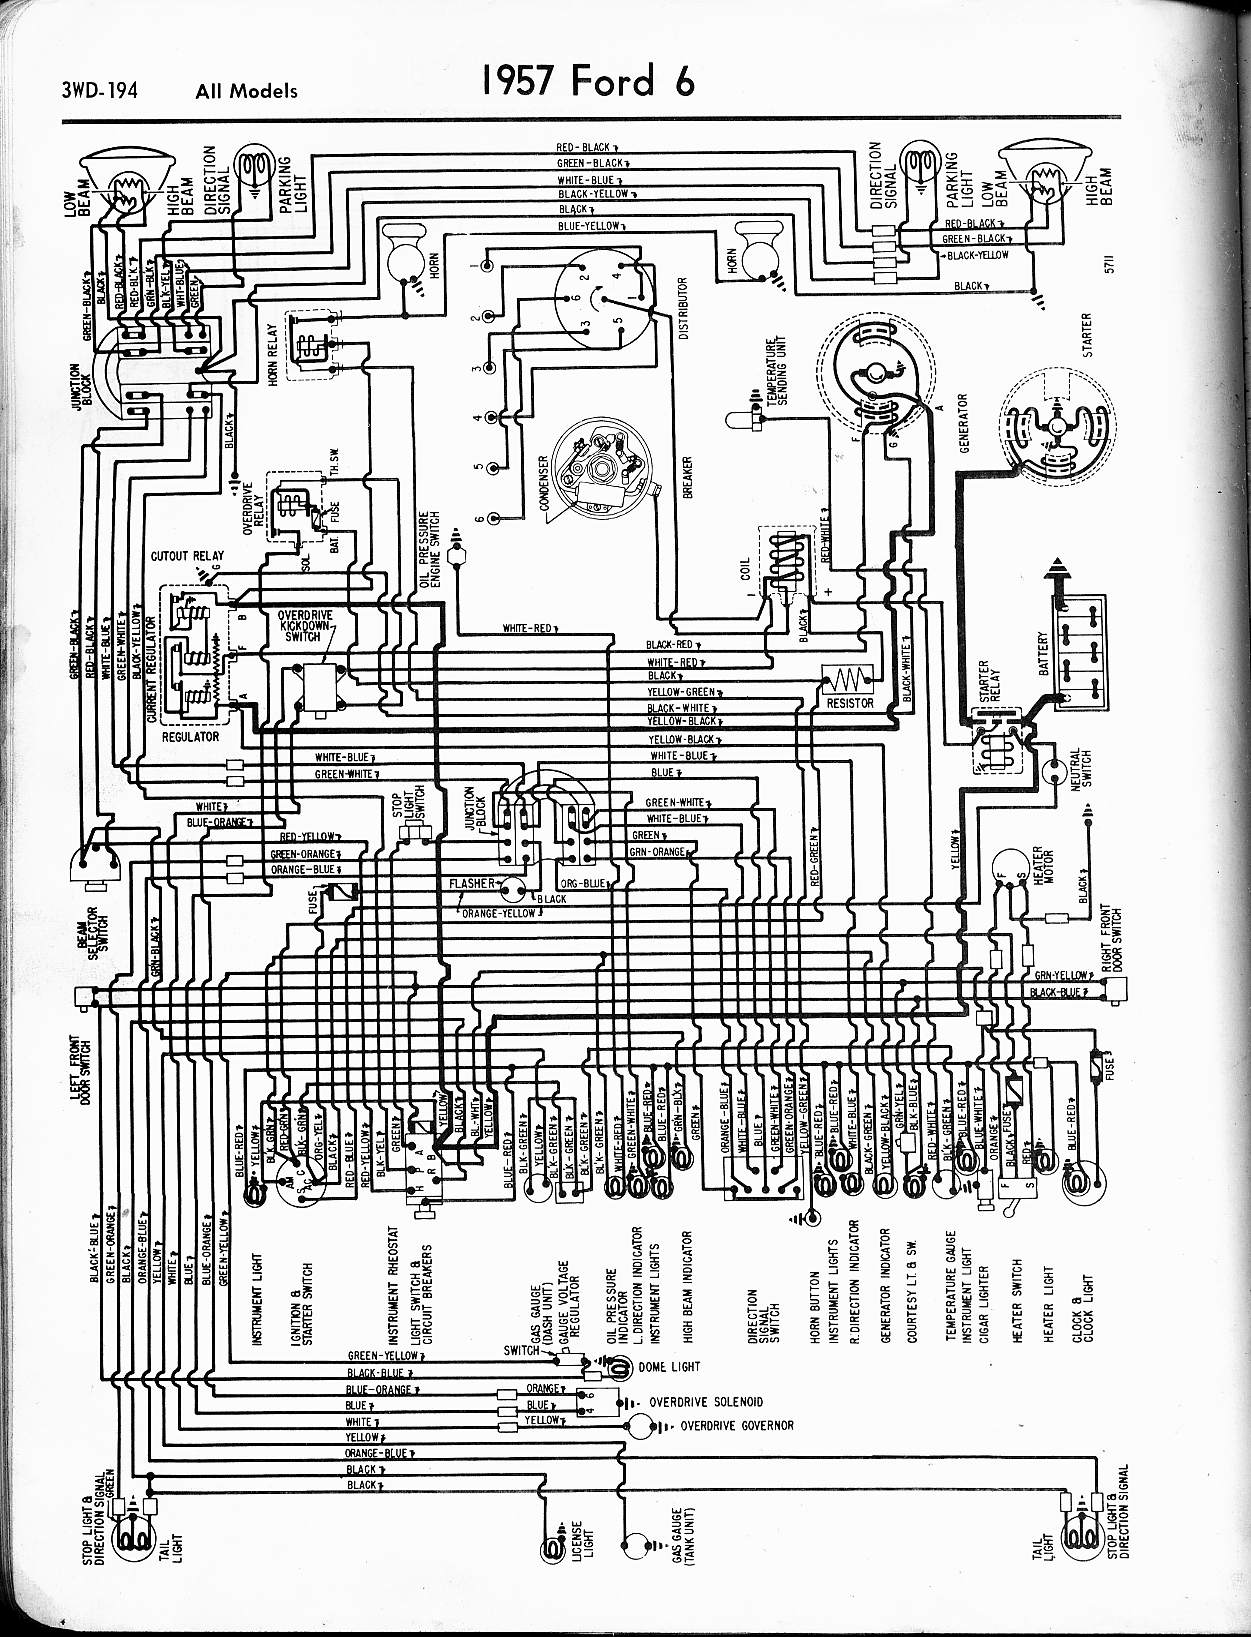 hight resolution of 1950 ford wiring harness wiring diagram usedcustom 1950 ford wiring harness complete wiring diagram used 1950